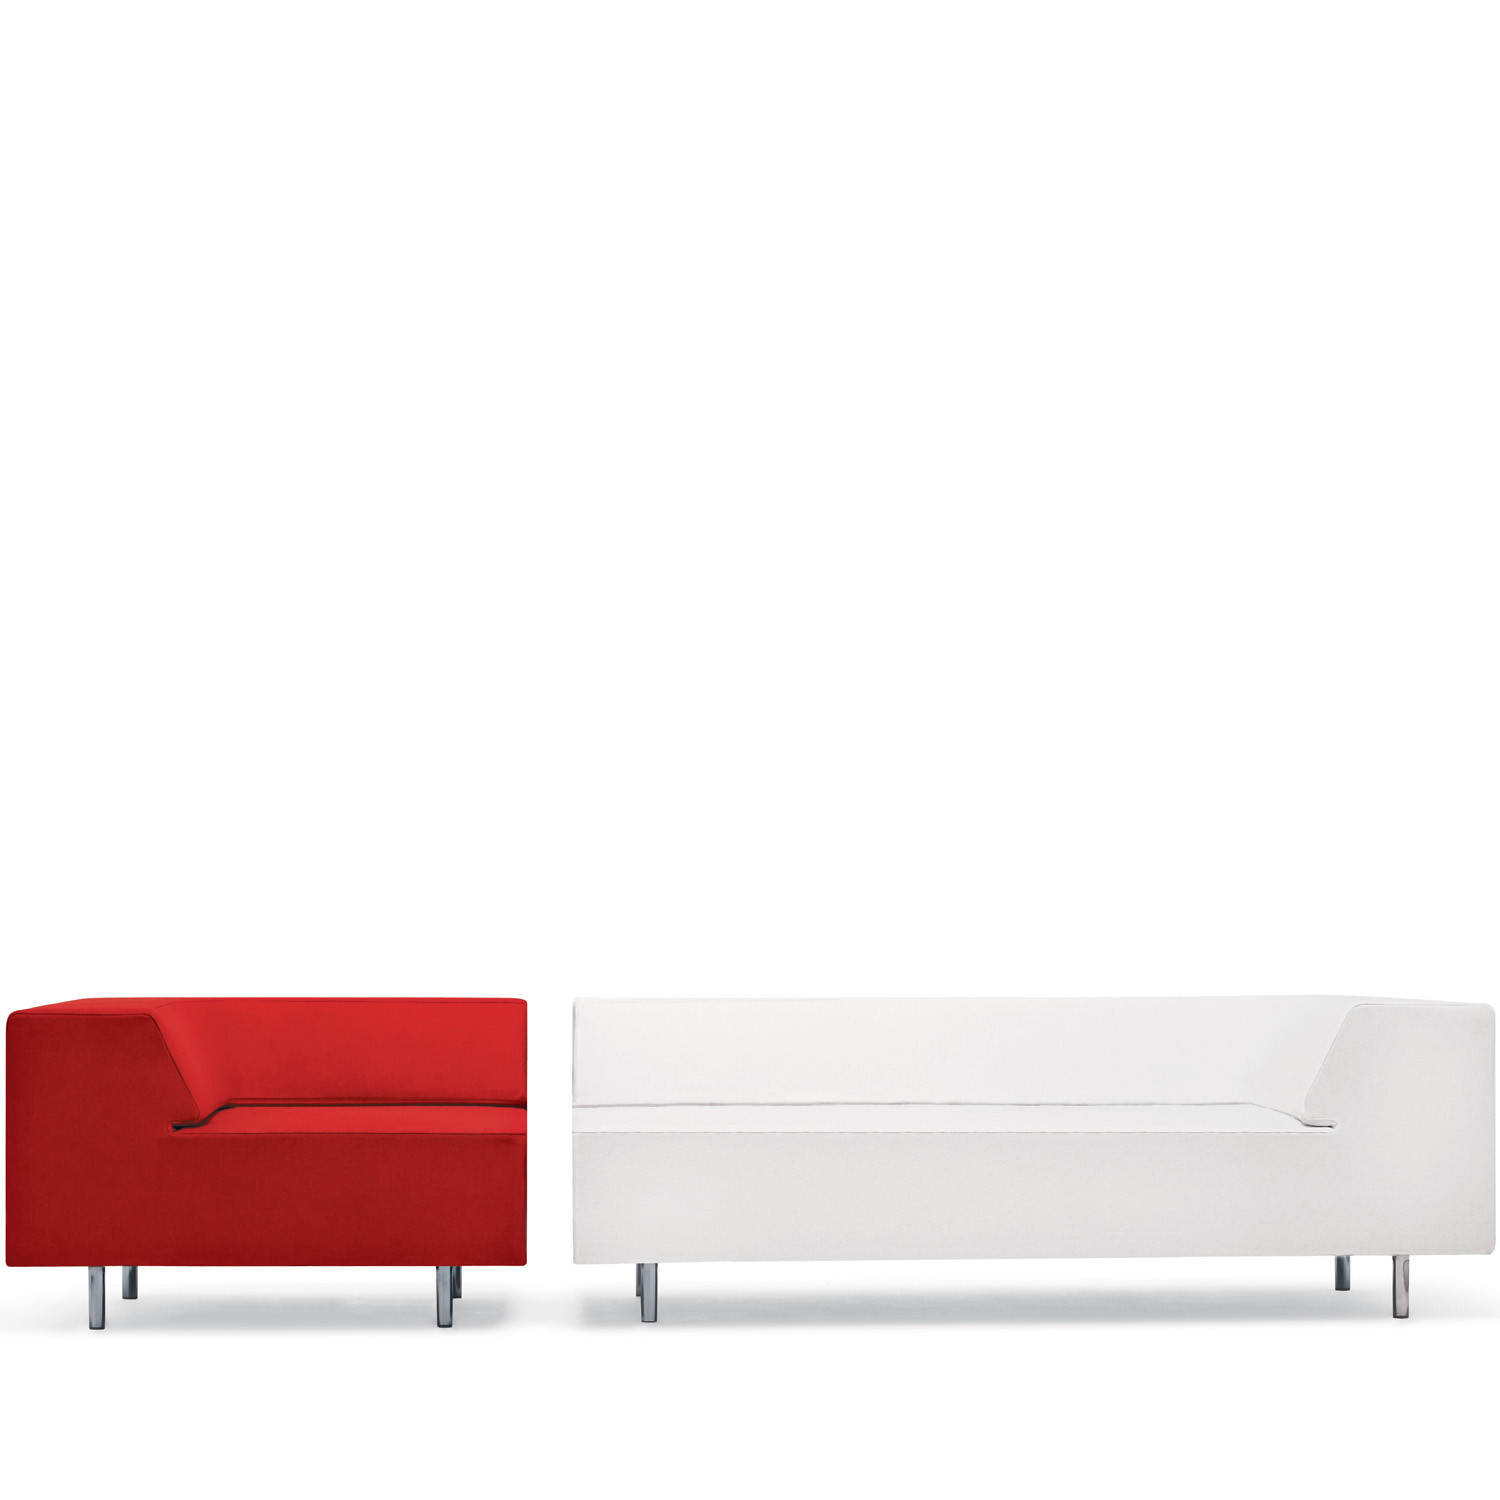 Easy Block Two Seat Modular Sofa and Armchair